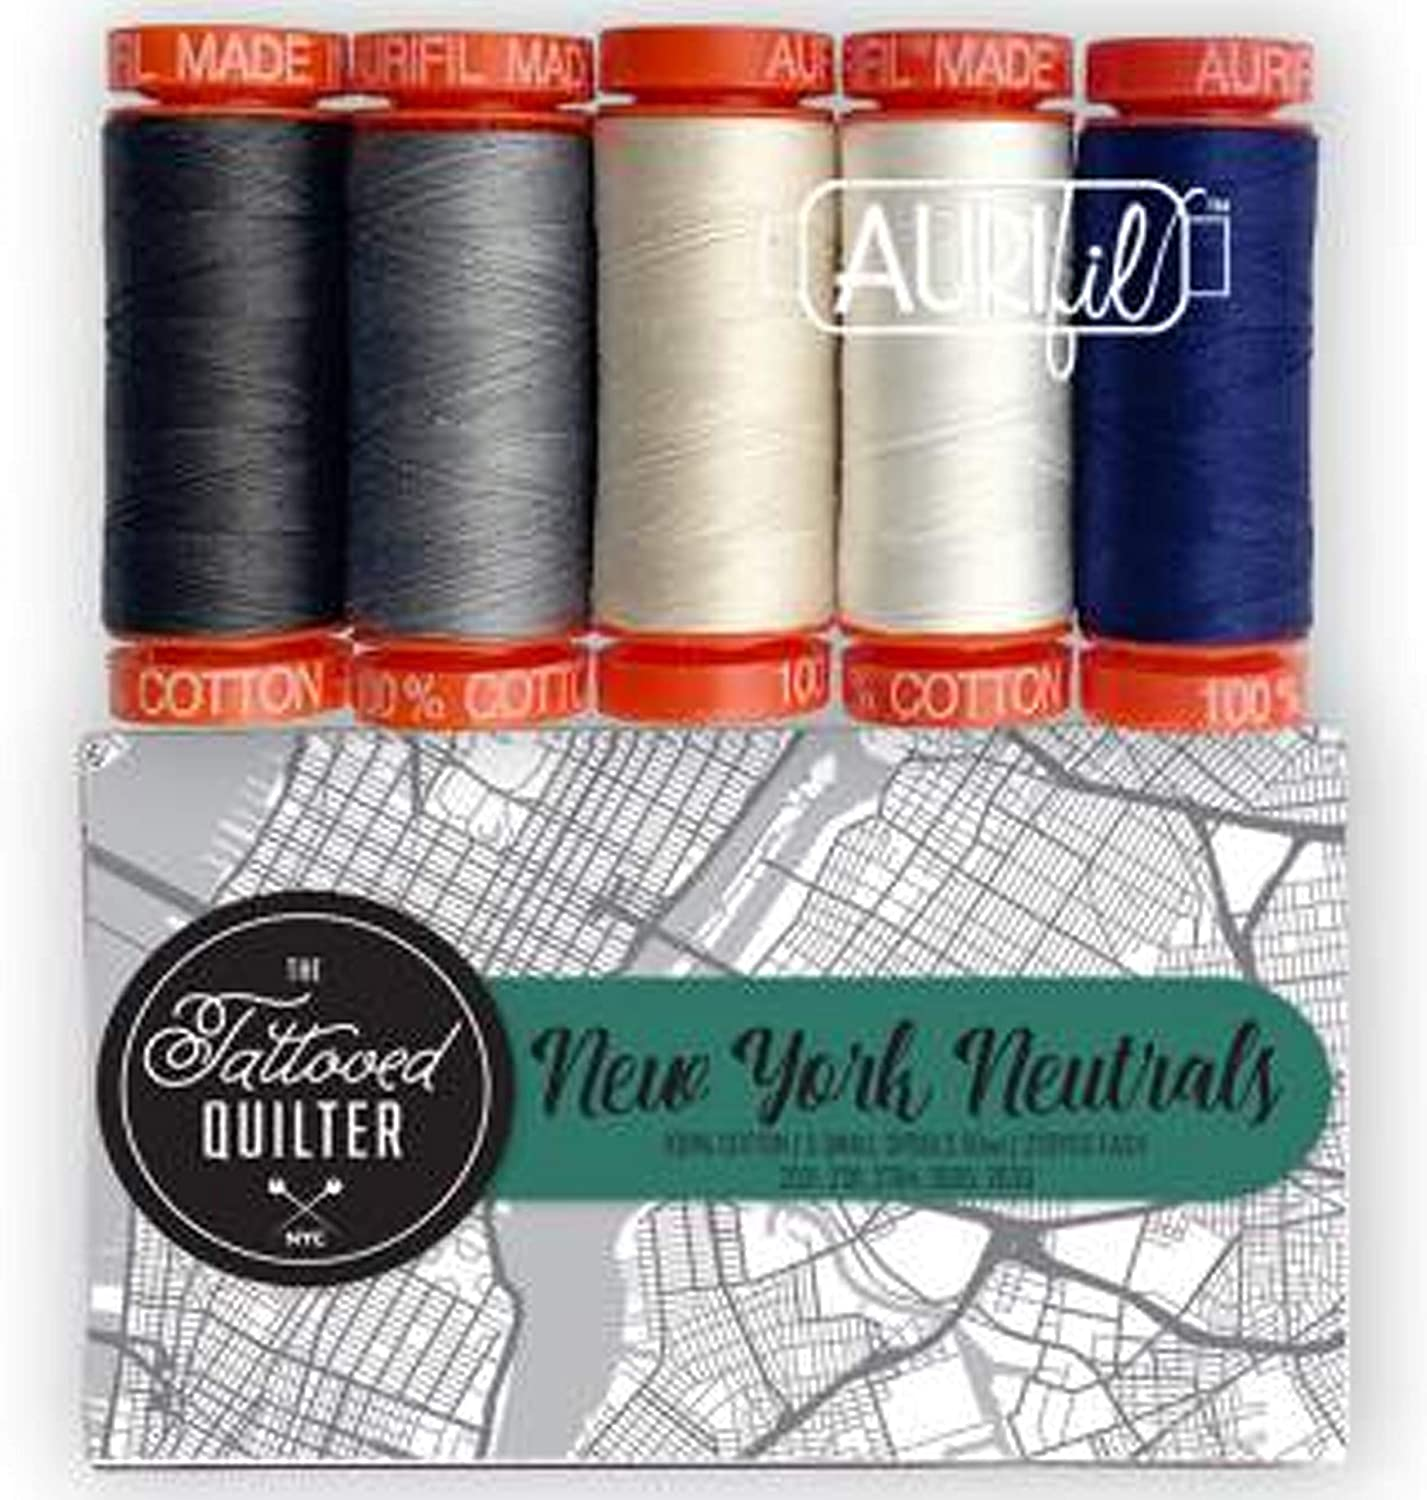 Aurifil Thread 50 wt Cotton 5 Small spools New York Neutrals by Tattooed Quilter